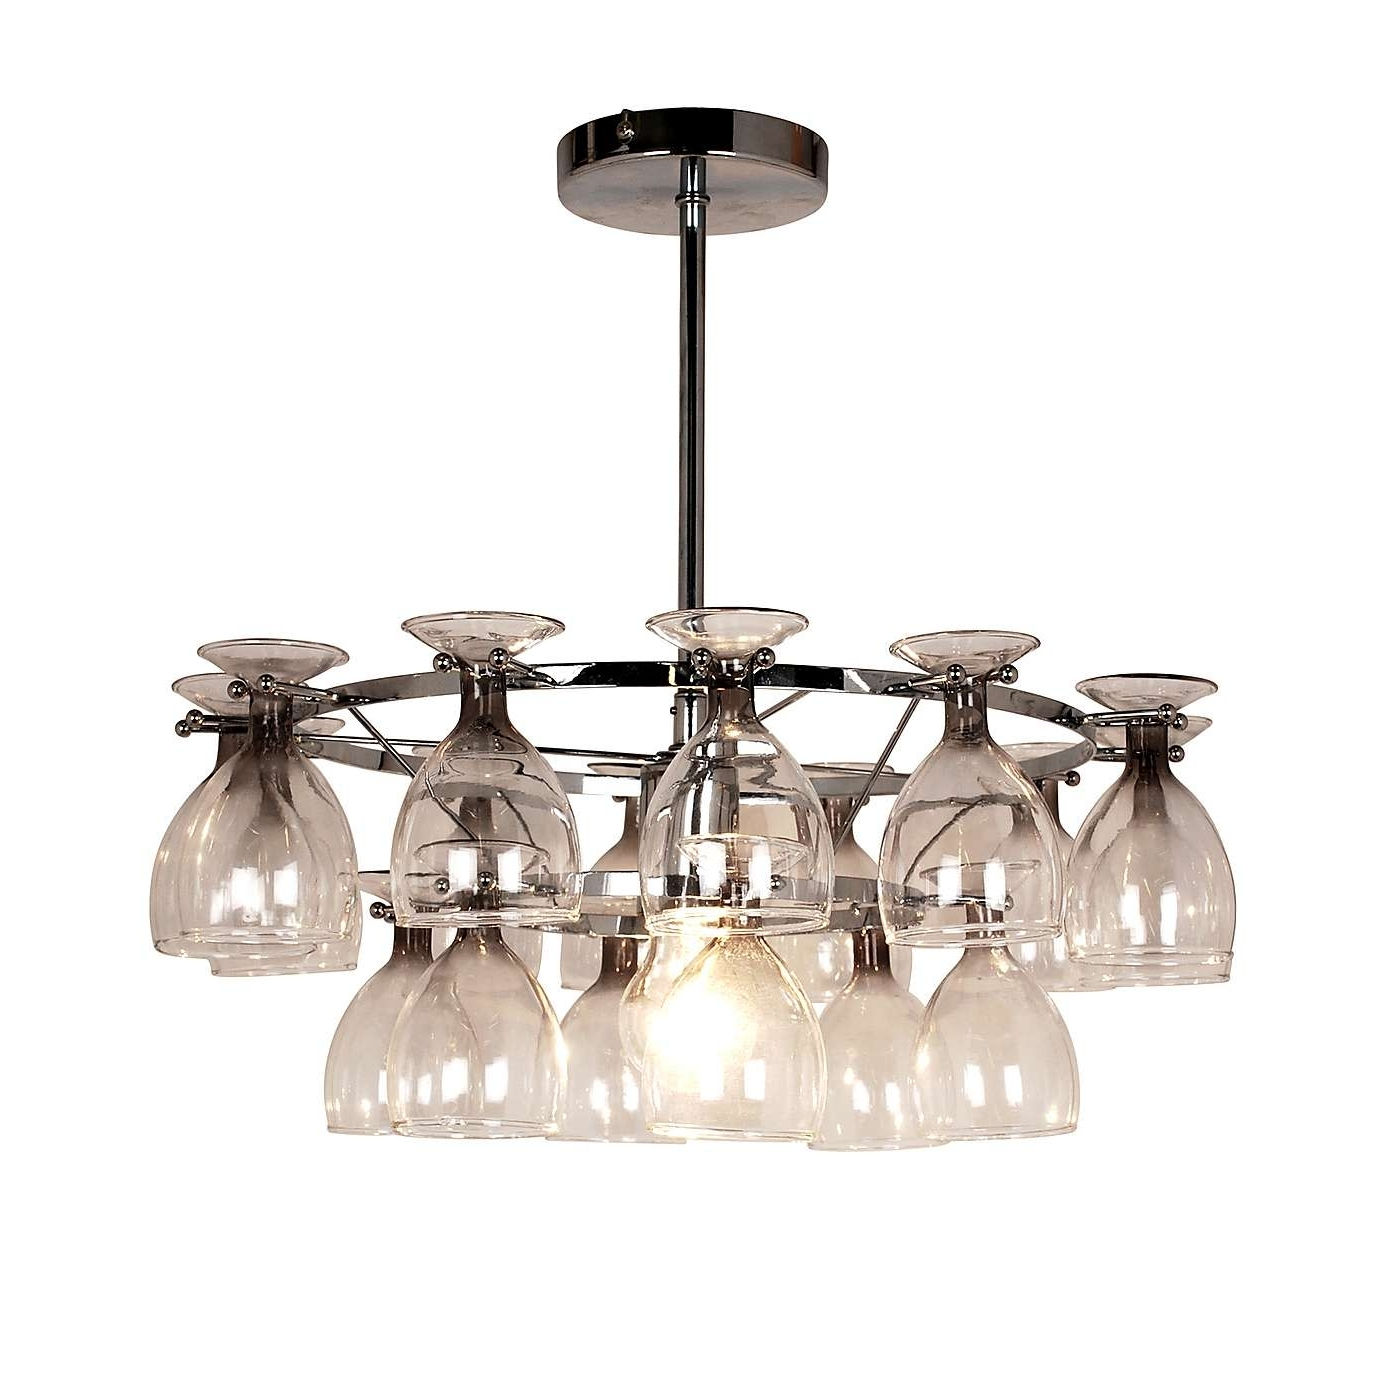 5 Beautiful Wine Glass Light Fittings (Gallery 10 of 15)